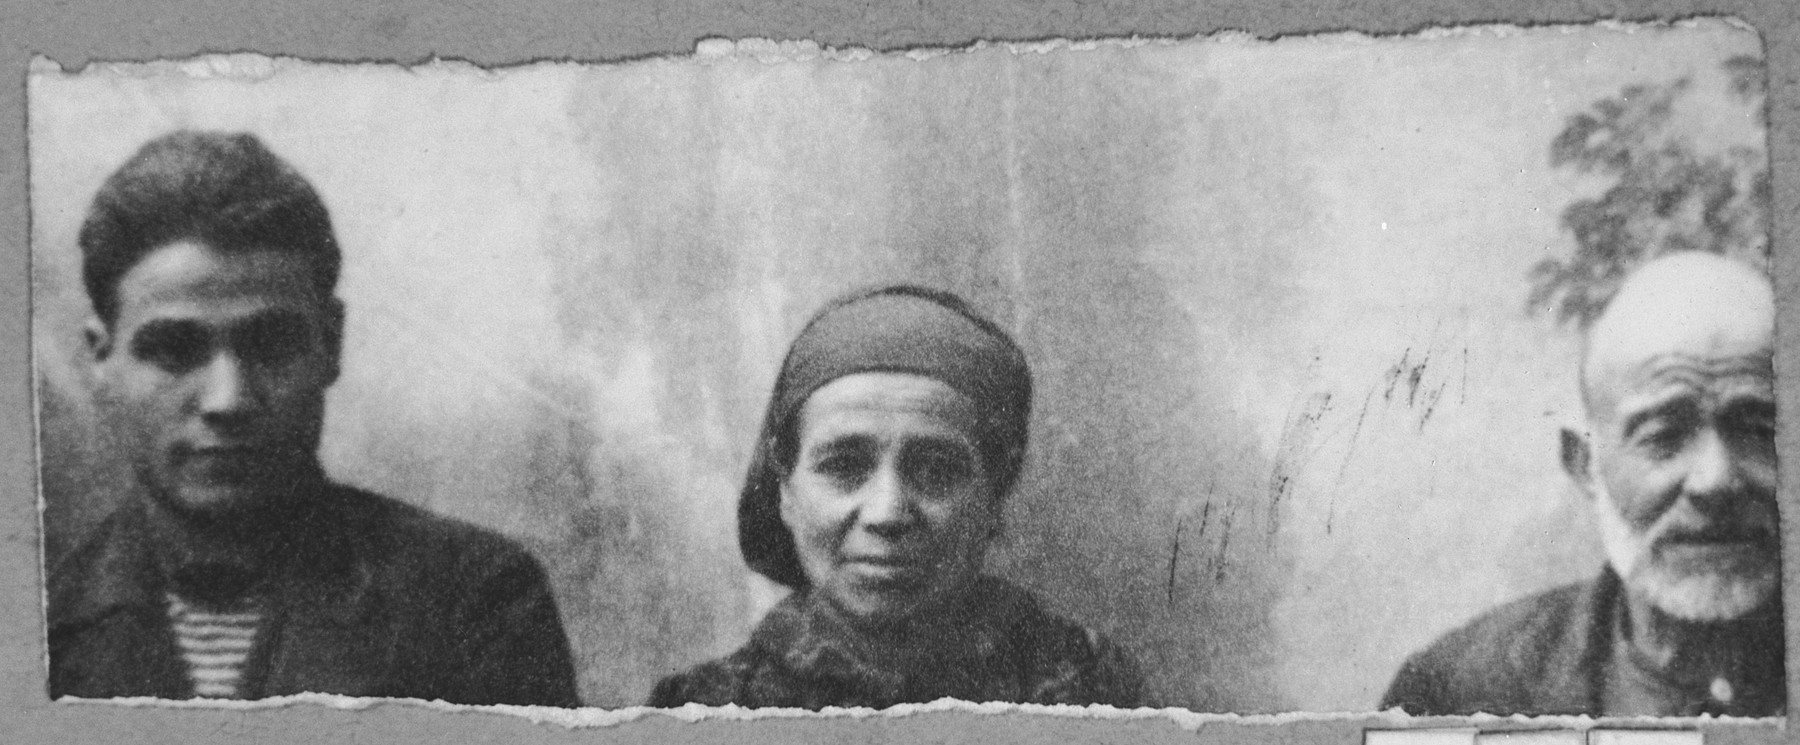 Portrait of Solomon Rosilio, his wife, Suncho, and his son Mair.  They lived at Sinagogina 5 in Bitola.